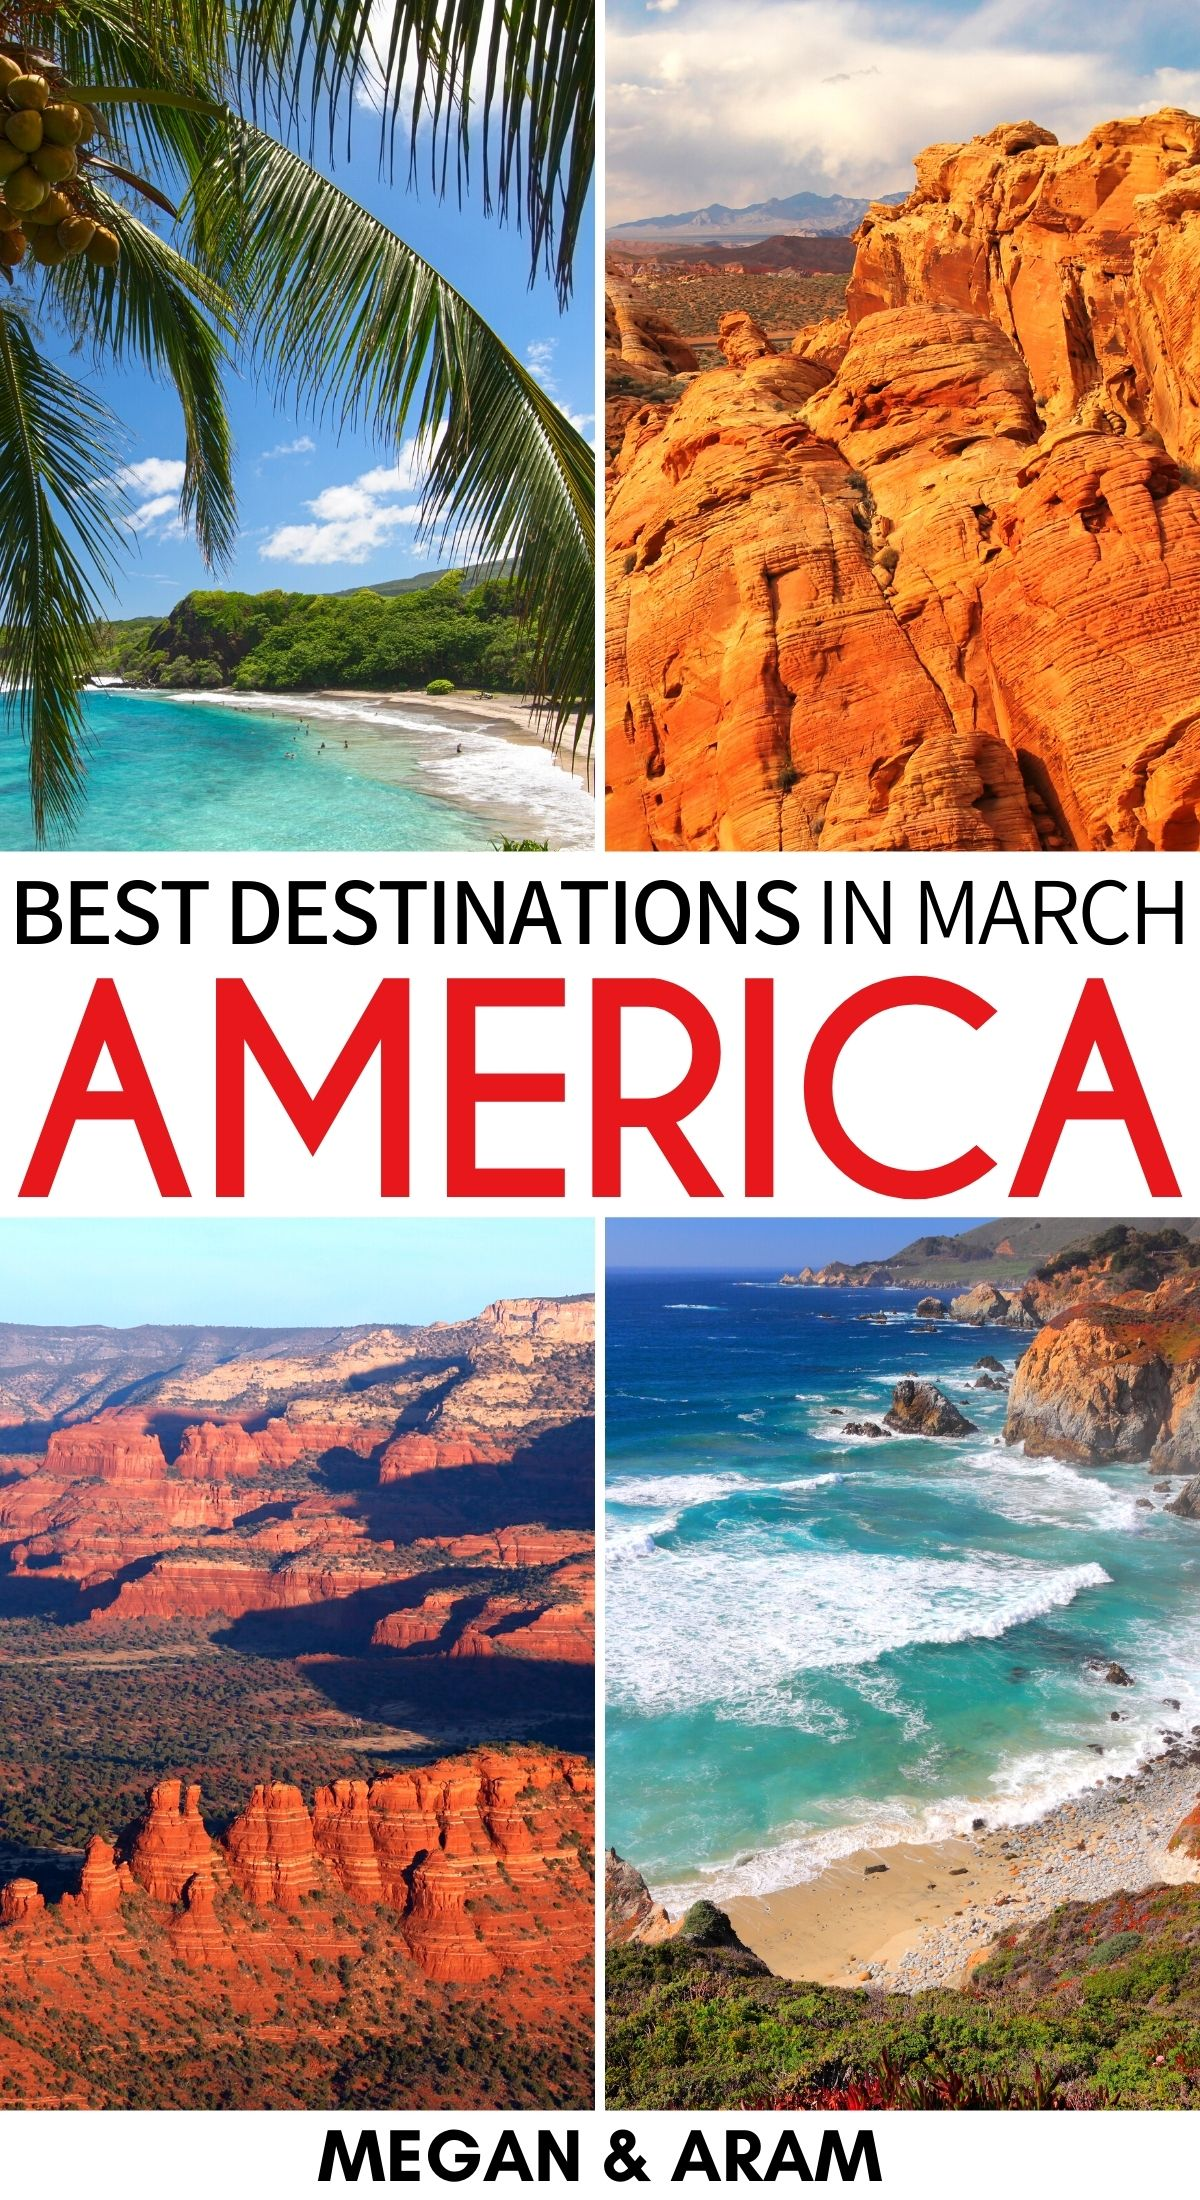 22 Best Places To Visit In March In The Usa Spring Tips In 2021 Cool Places To Visit Best States To Visit Best Places To Travel